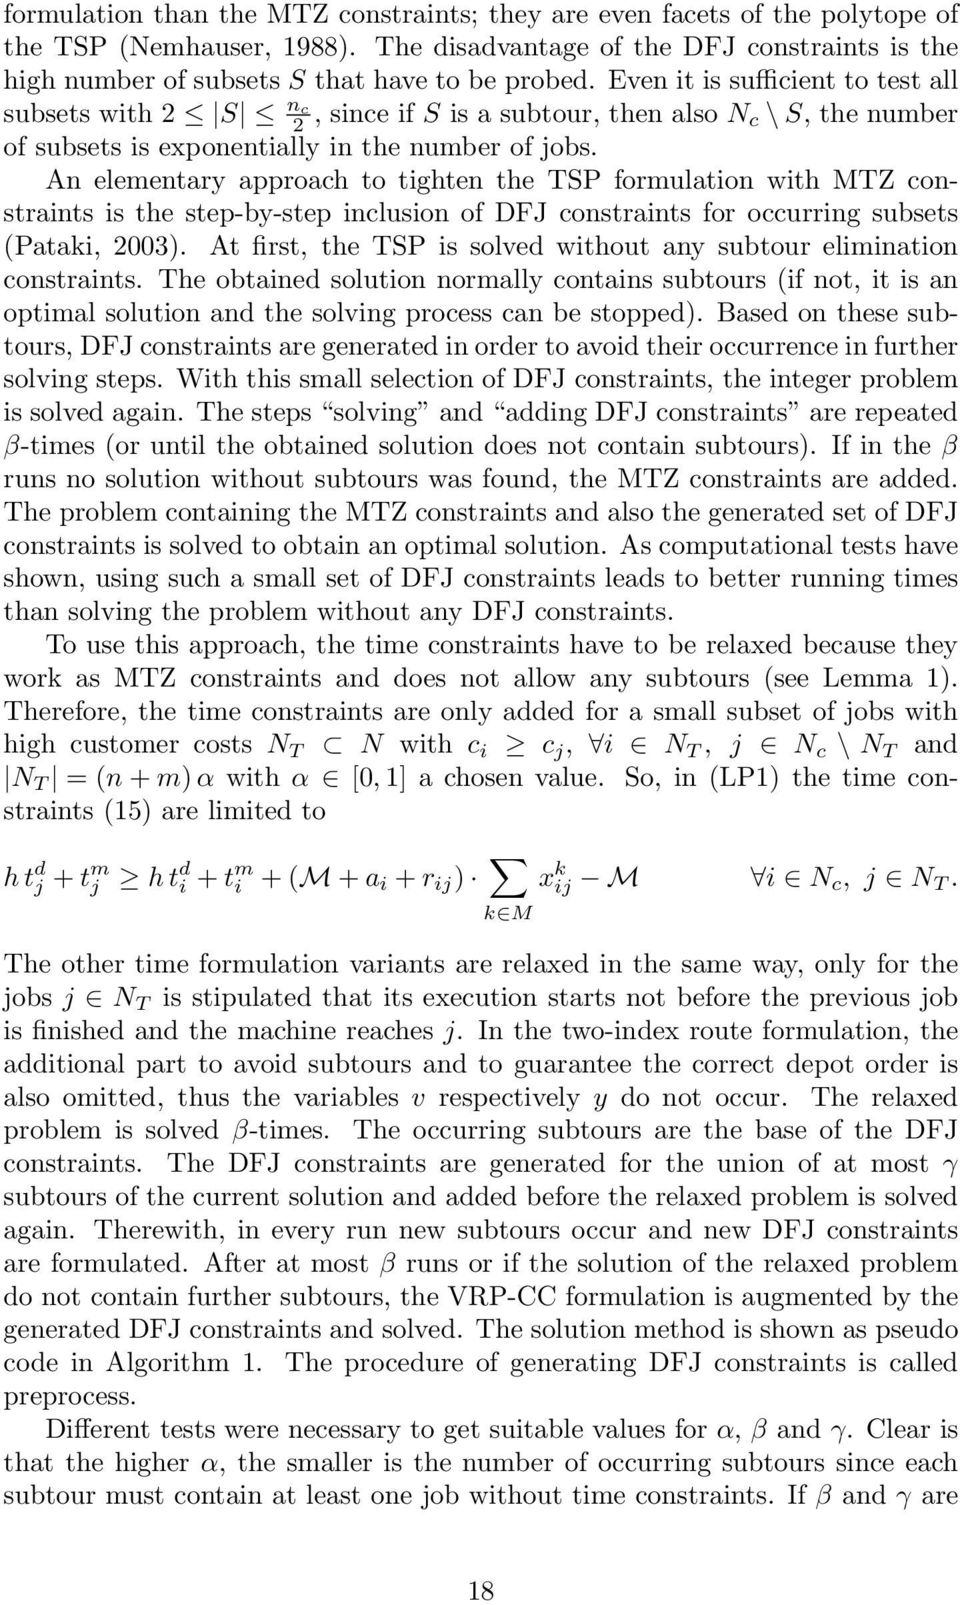 An elementary approach to tighten the TSP formulation with MTZ constraints is the step-by-step inclusion of DFJ constraints for occurring subsets (Pataki, 2003).